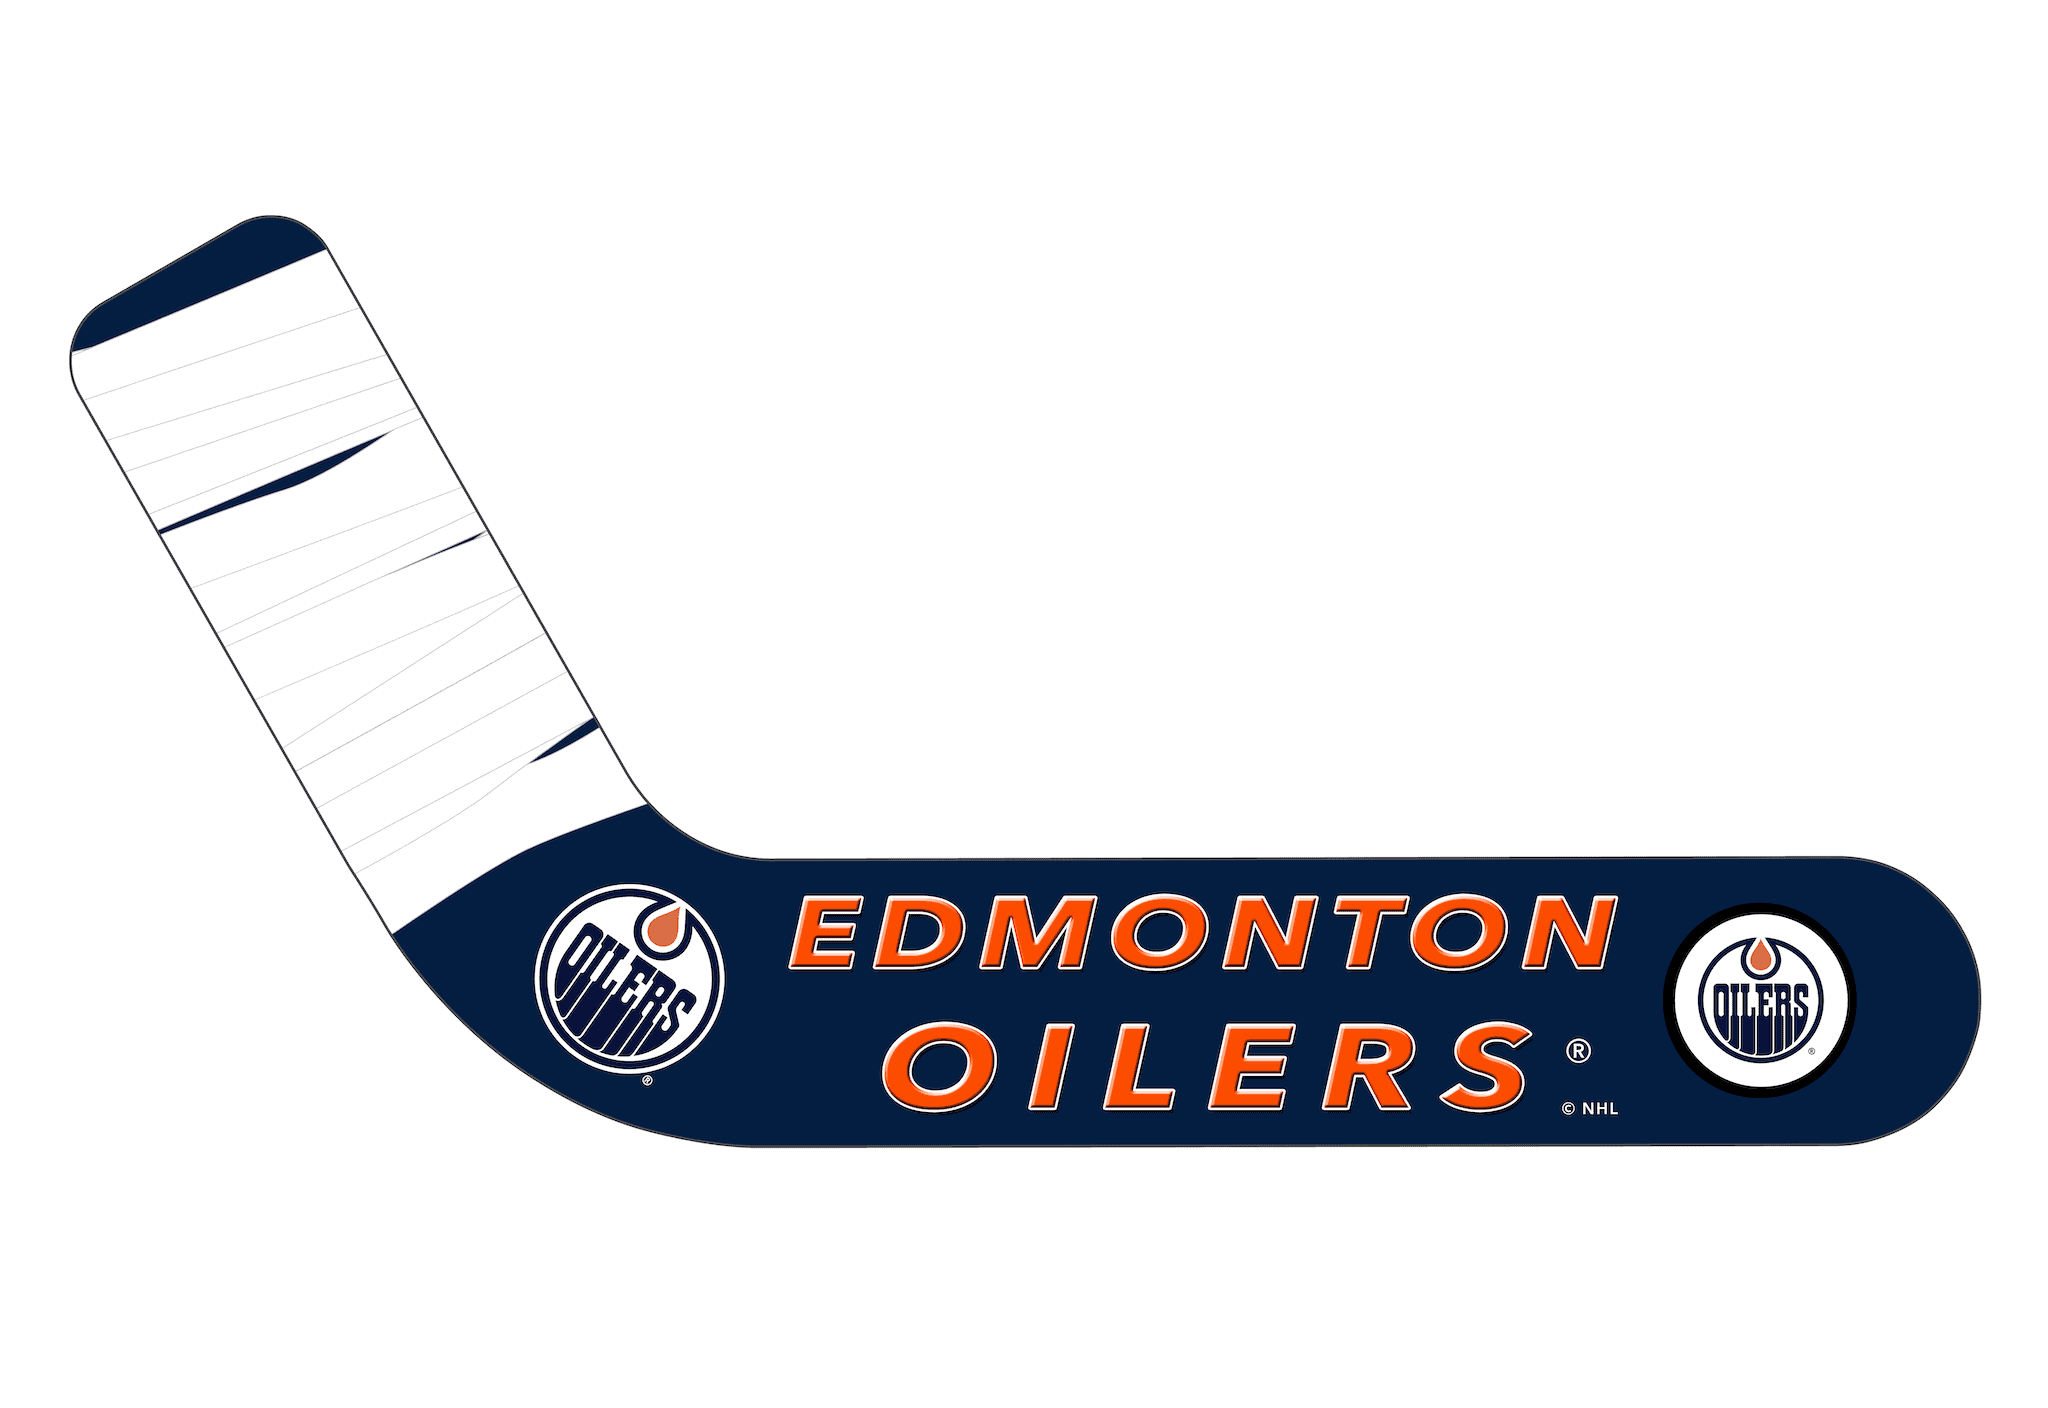 Edmonton Oilers® Fan Blades - Ultimate Hockey Ceiling Fans